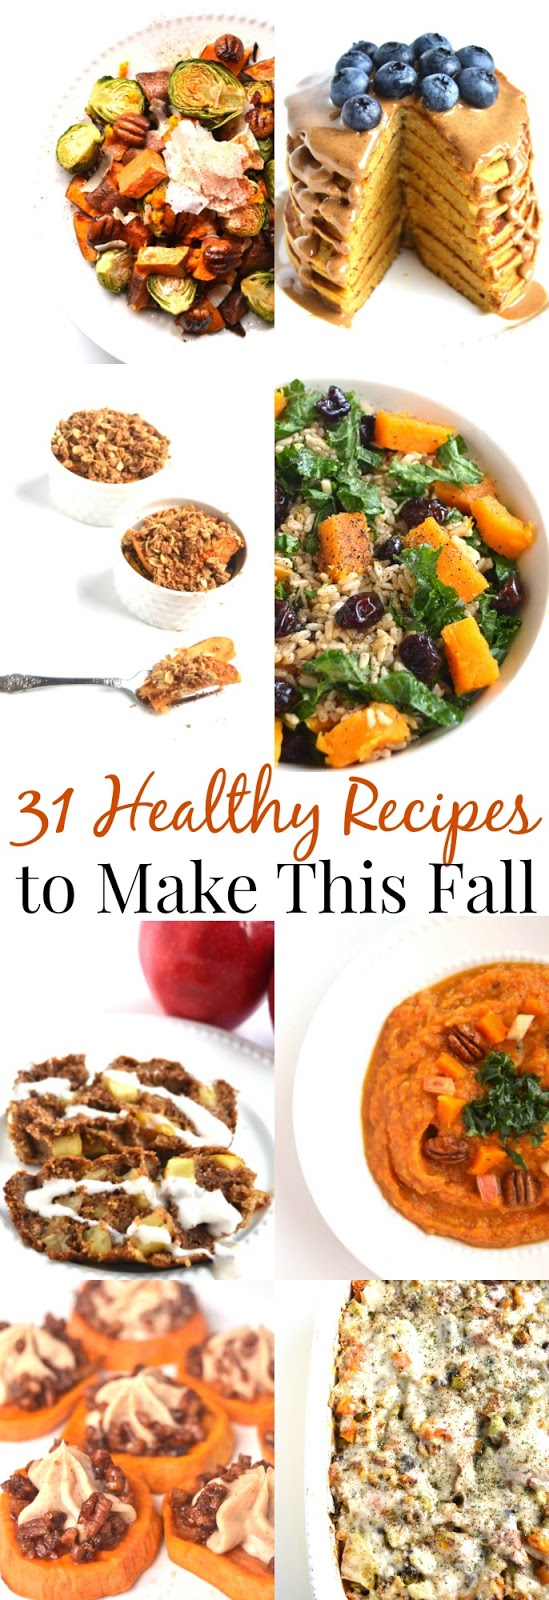 31 Healthy Recipes to Make This Fall www.nutritionistreviews.com